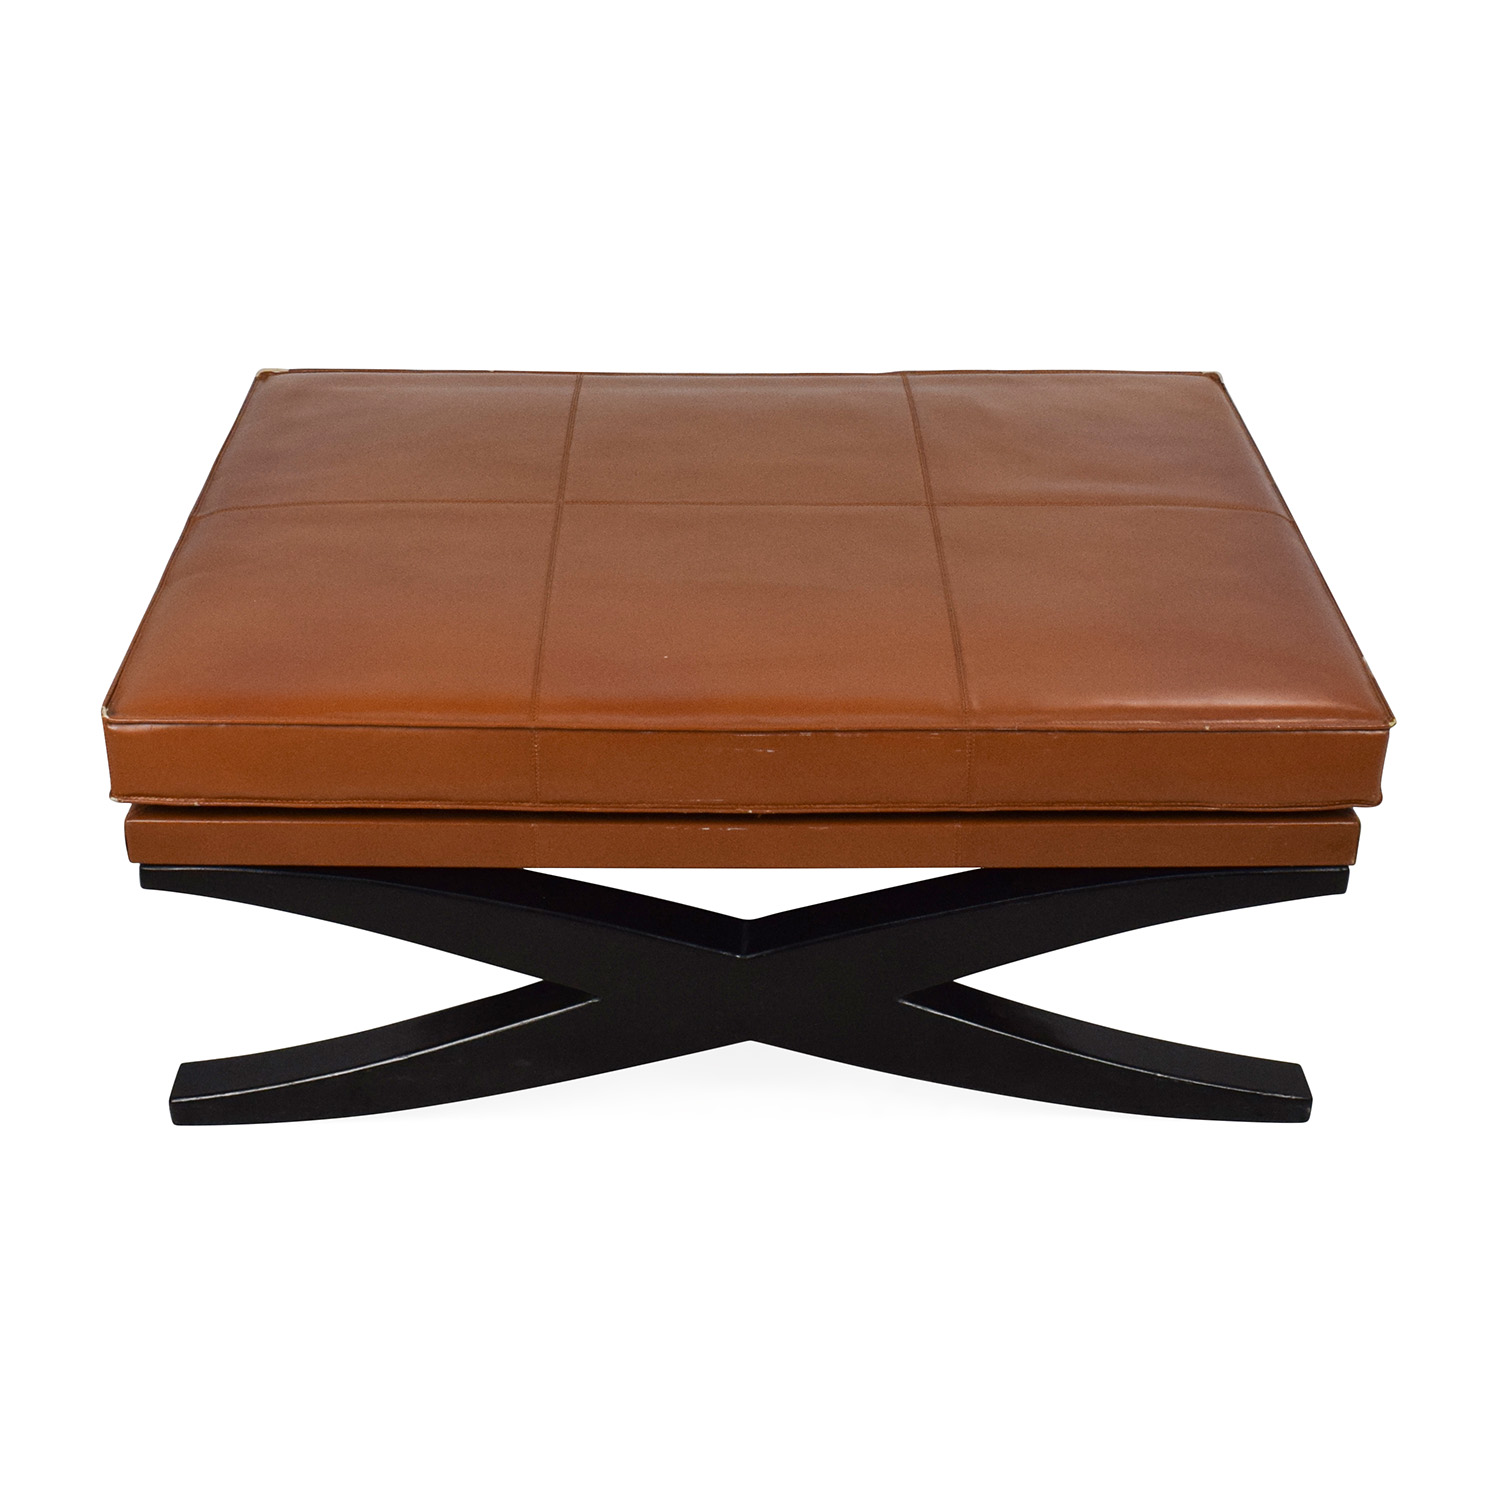 Large Klismos Leather and Wood Ottoman coupon